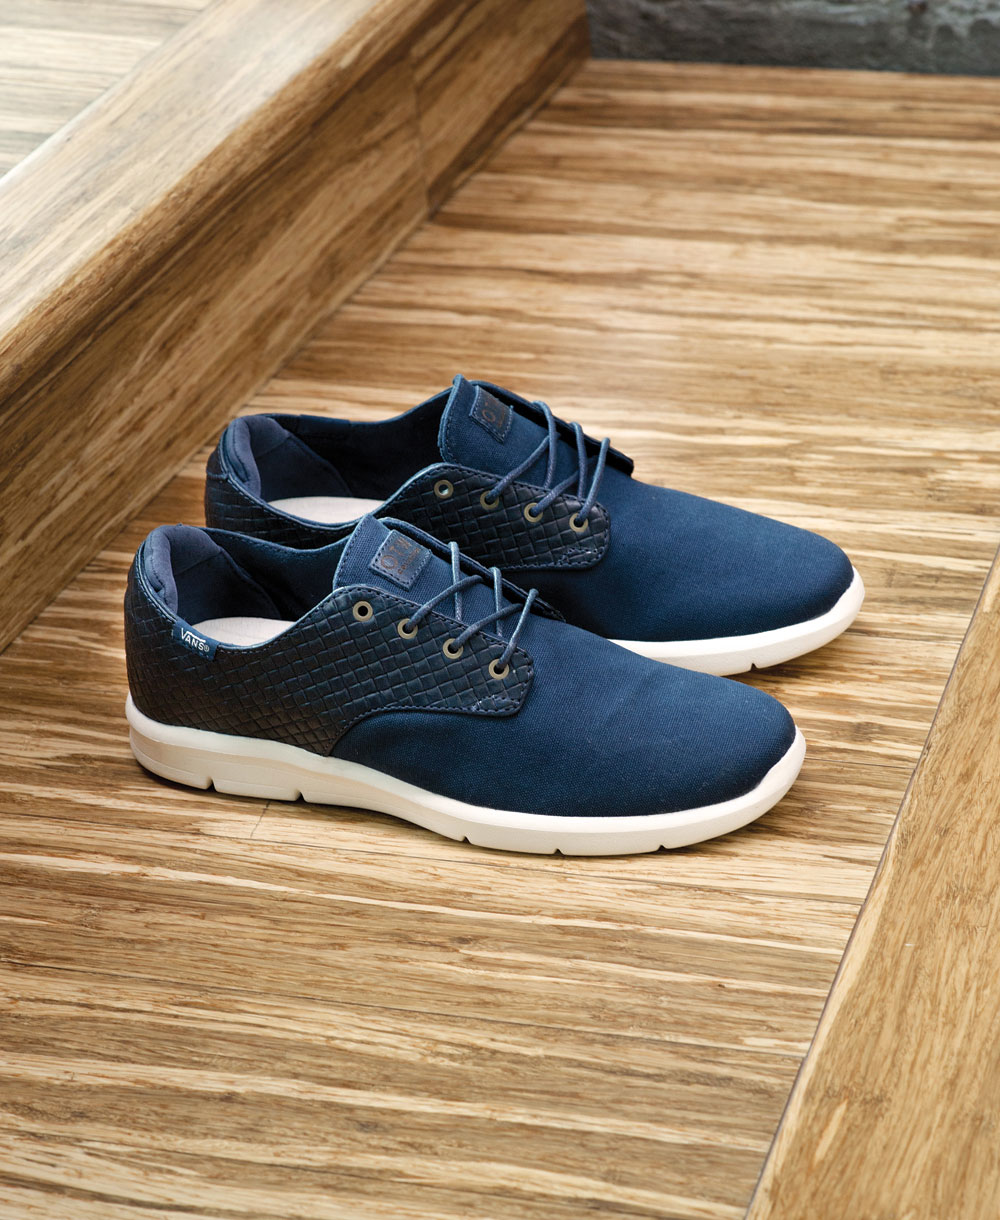 Vans-OTW-Prelow_Woven_Navy-Antique_Hero_Spring-2013